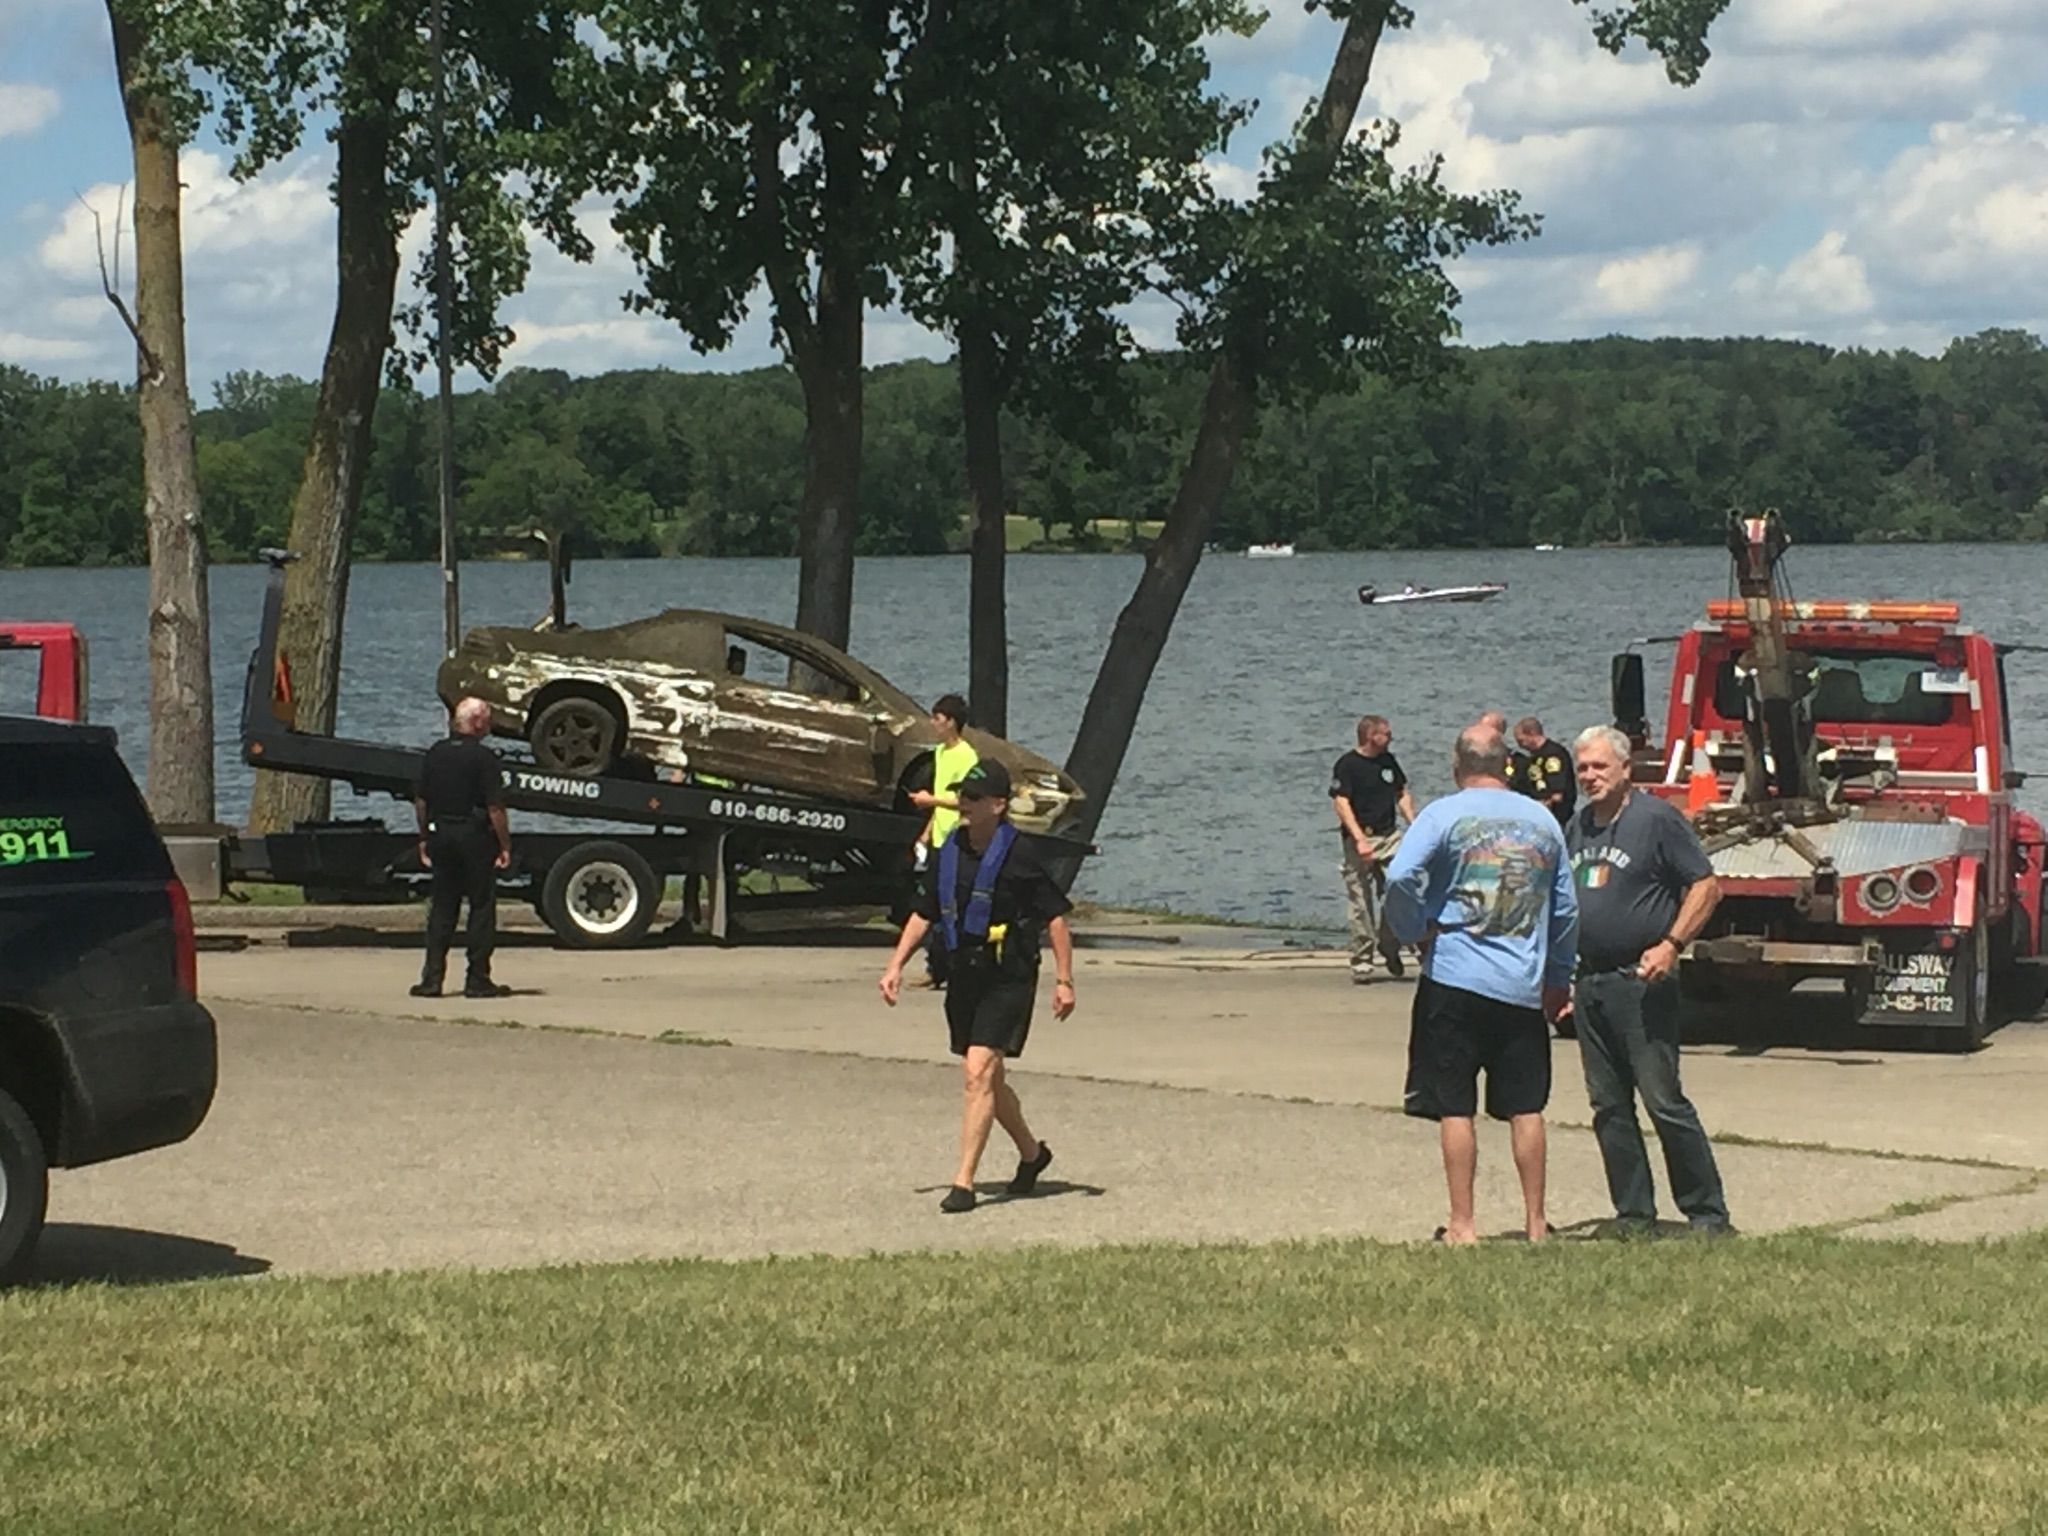 A park ranger at the Walleye Pike Boat Launch in Davison's Richfield Township says a fisherman using radar discovered a Pontiac Grand Am in the water. (Photo Credit:  Tom Metevia)